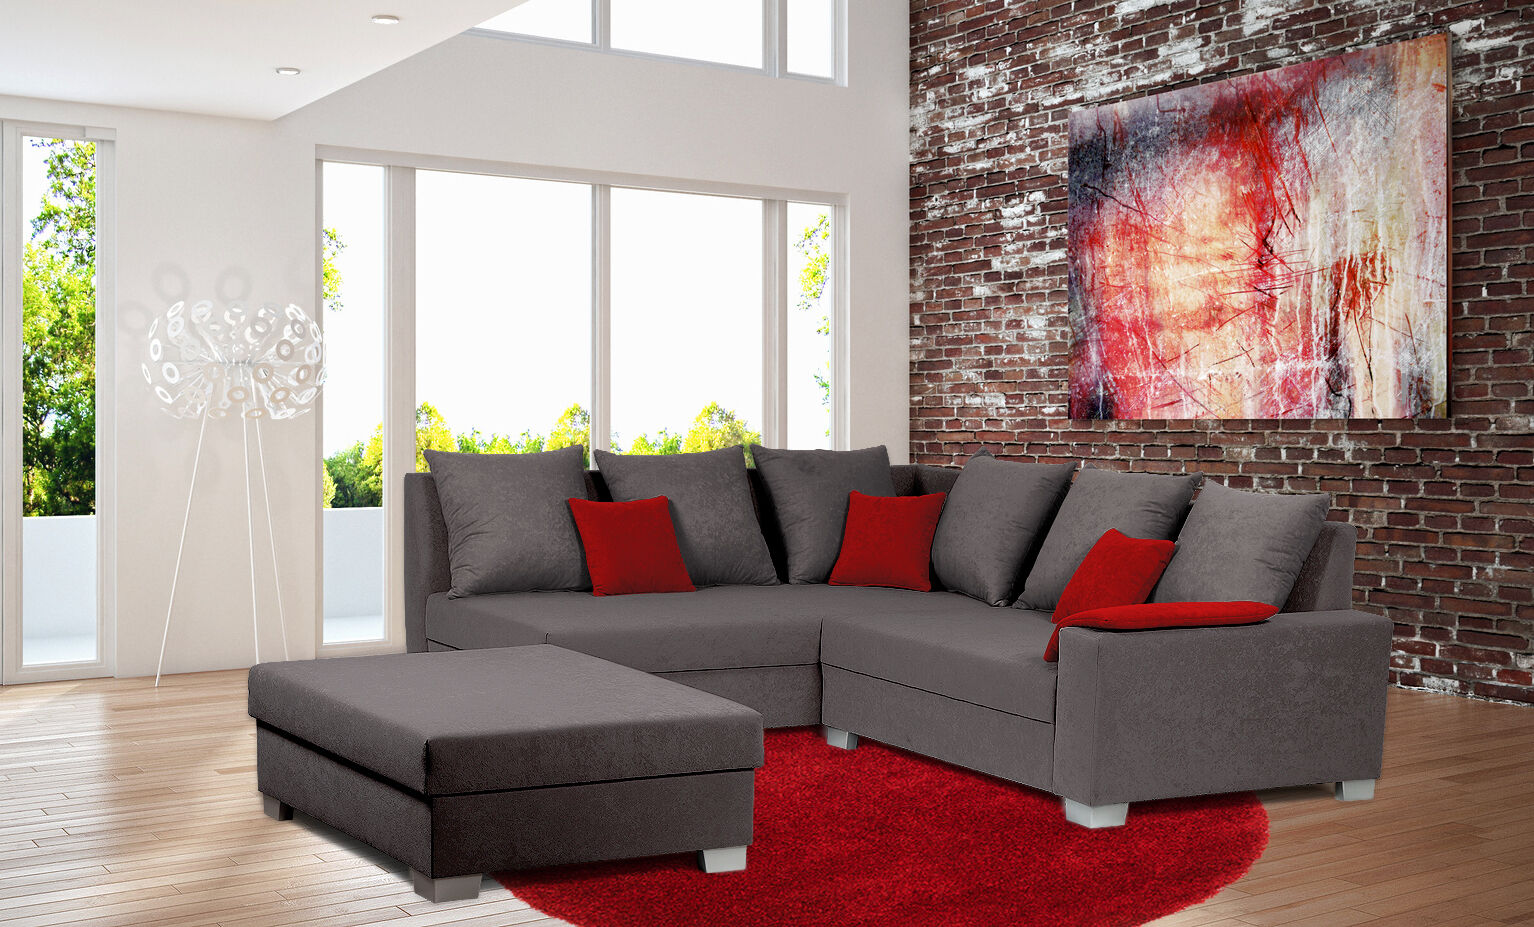 ecksofa eckcouch polsterecke couchgarnitur bettfunktion schlaffunktion sofa eur 389 00. Black Bedroom Furniture Sets. Home Design Ideas